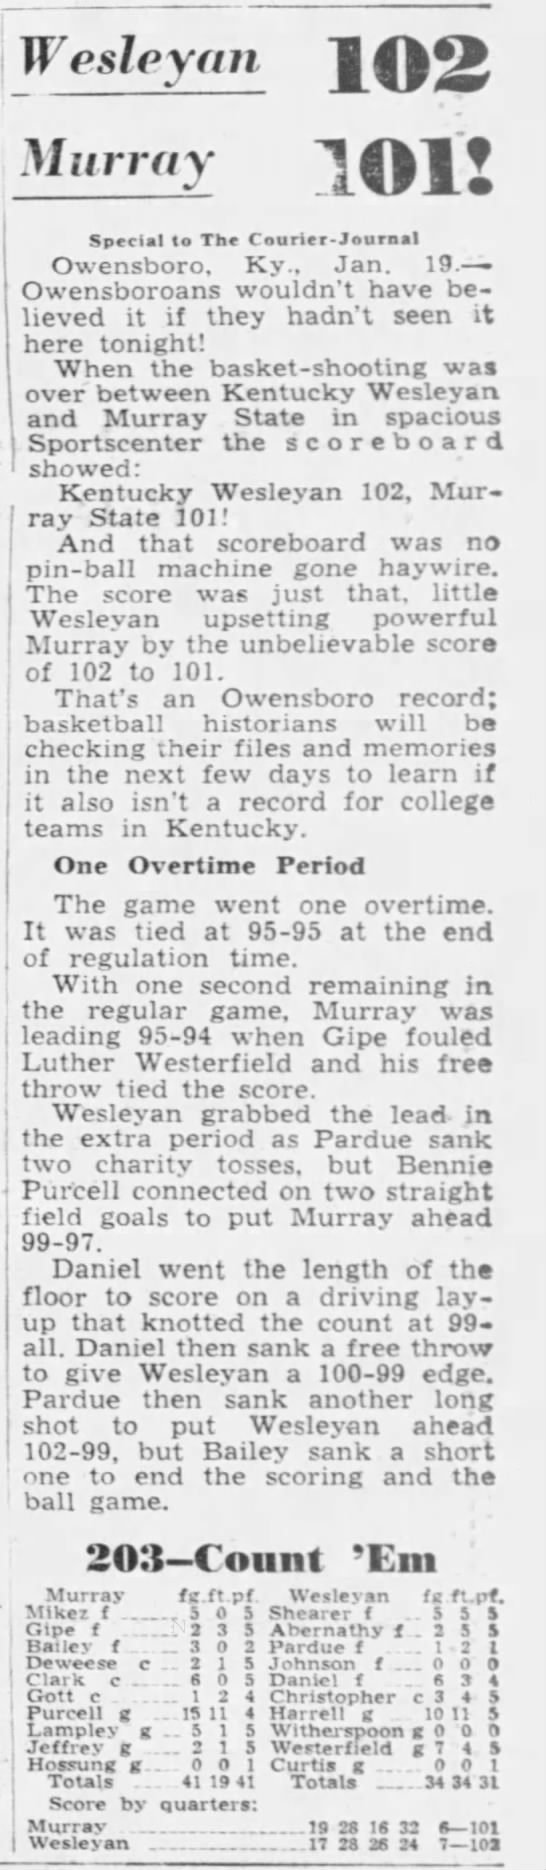 01-19-1952 Vs Kentucky Wesleyan (overtime) Bennie Purcell 41 points.